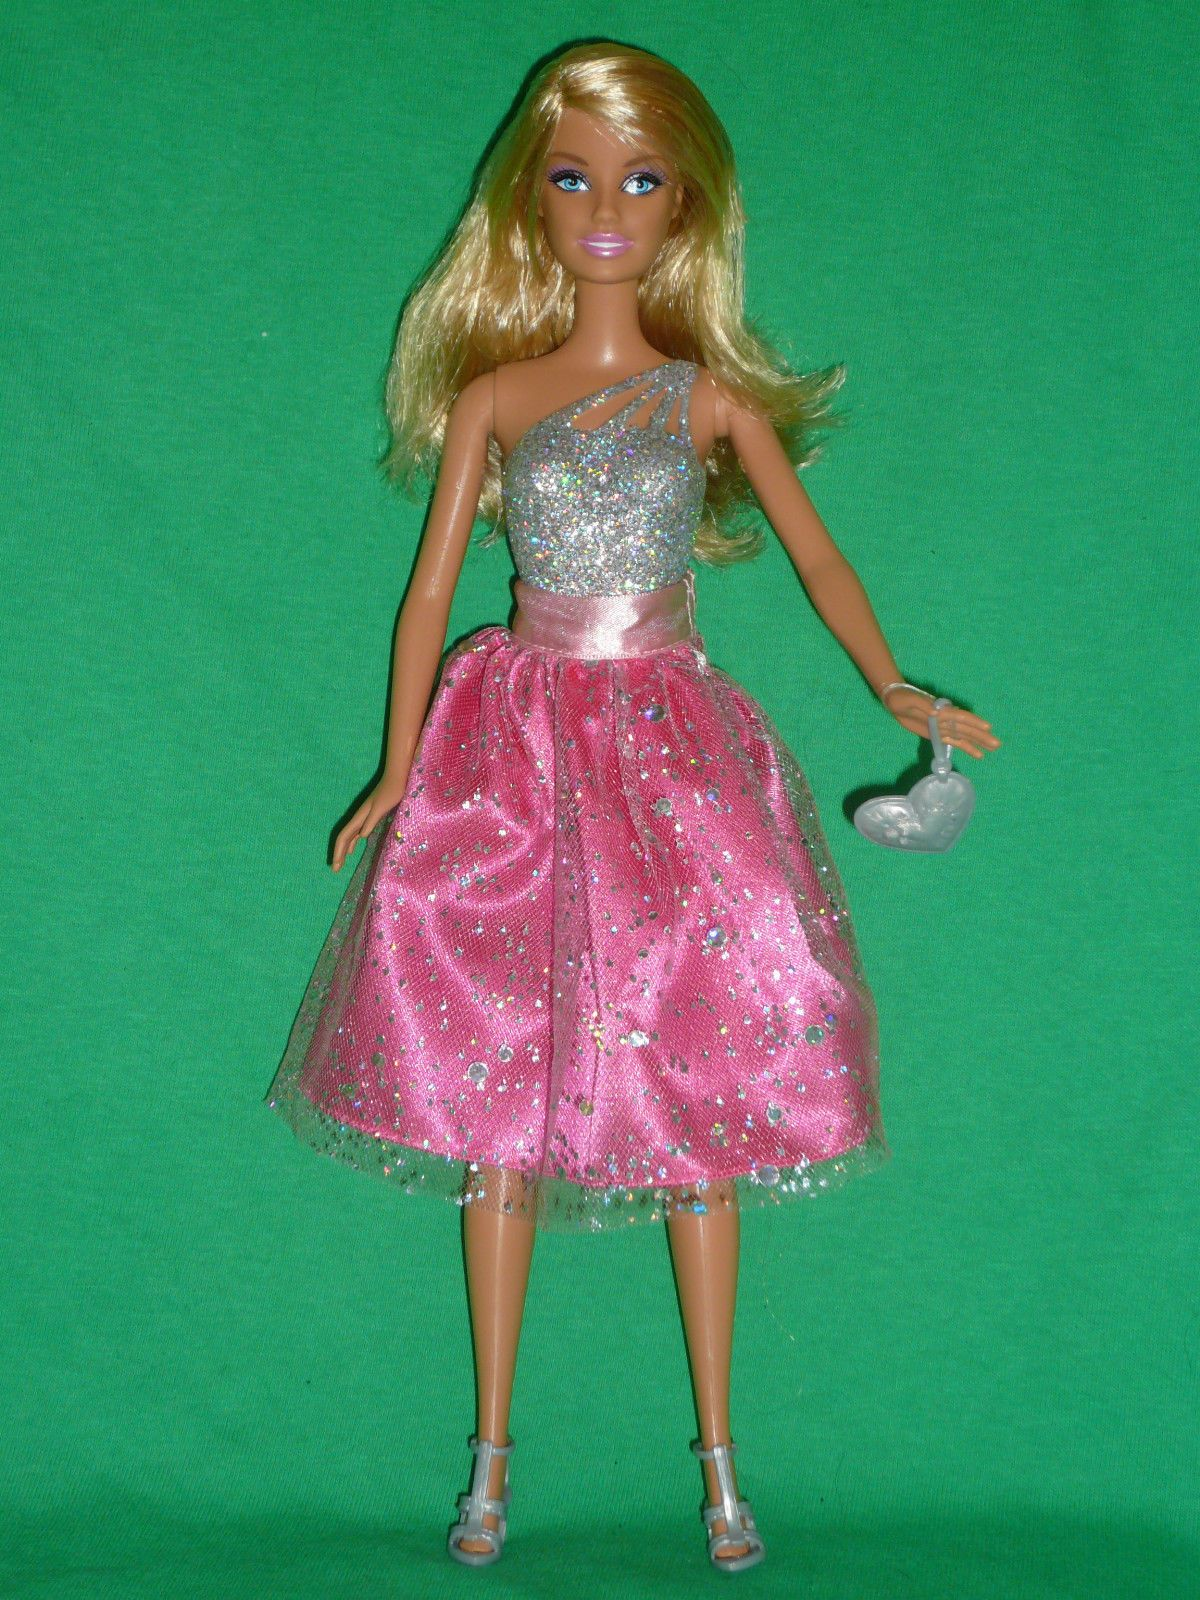 Year name barbie doll painted on silver glitter swim suit swimsuit bathing suit bodysuit 2009 body style and 1998 head style made in indonesia mattel